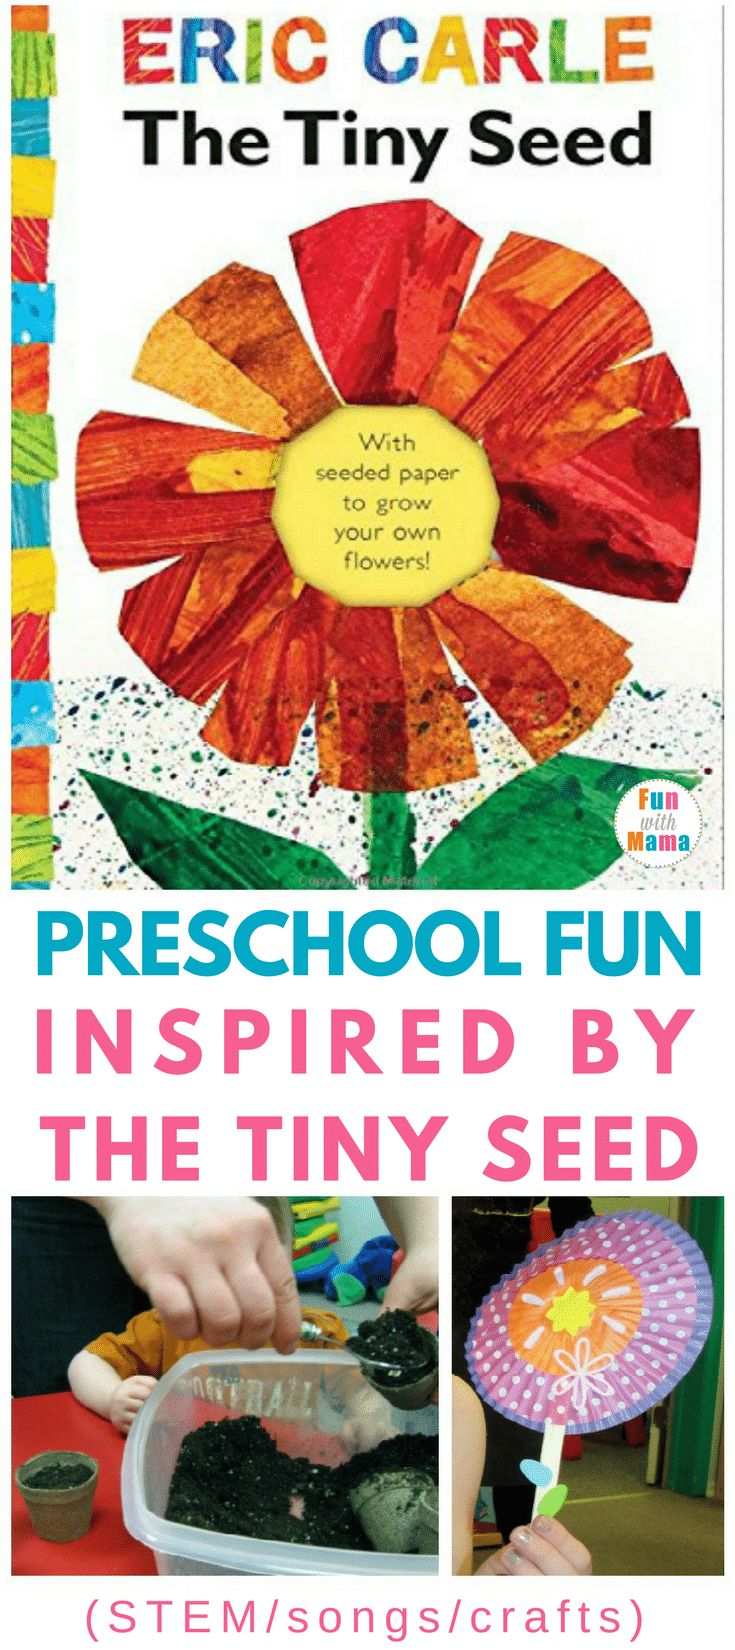 """Use the wonderful book """"The Tiny Seed"""" by Eric Carle to learn about the life cycle of a flower. Then enjoy some fun planting and seed activities. Includes imaginative play, songs, STEM activities, and a simple craft, to enjoy with your preschool kid. via @funwithmama"""